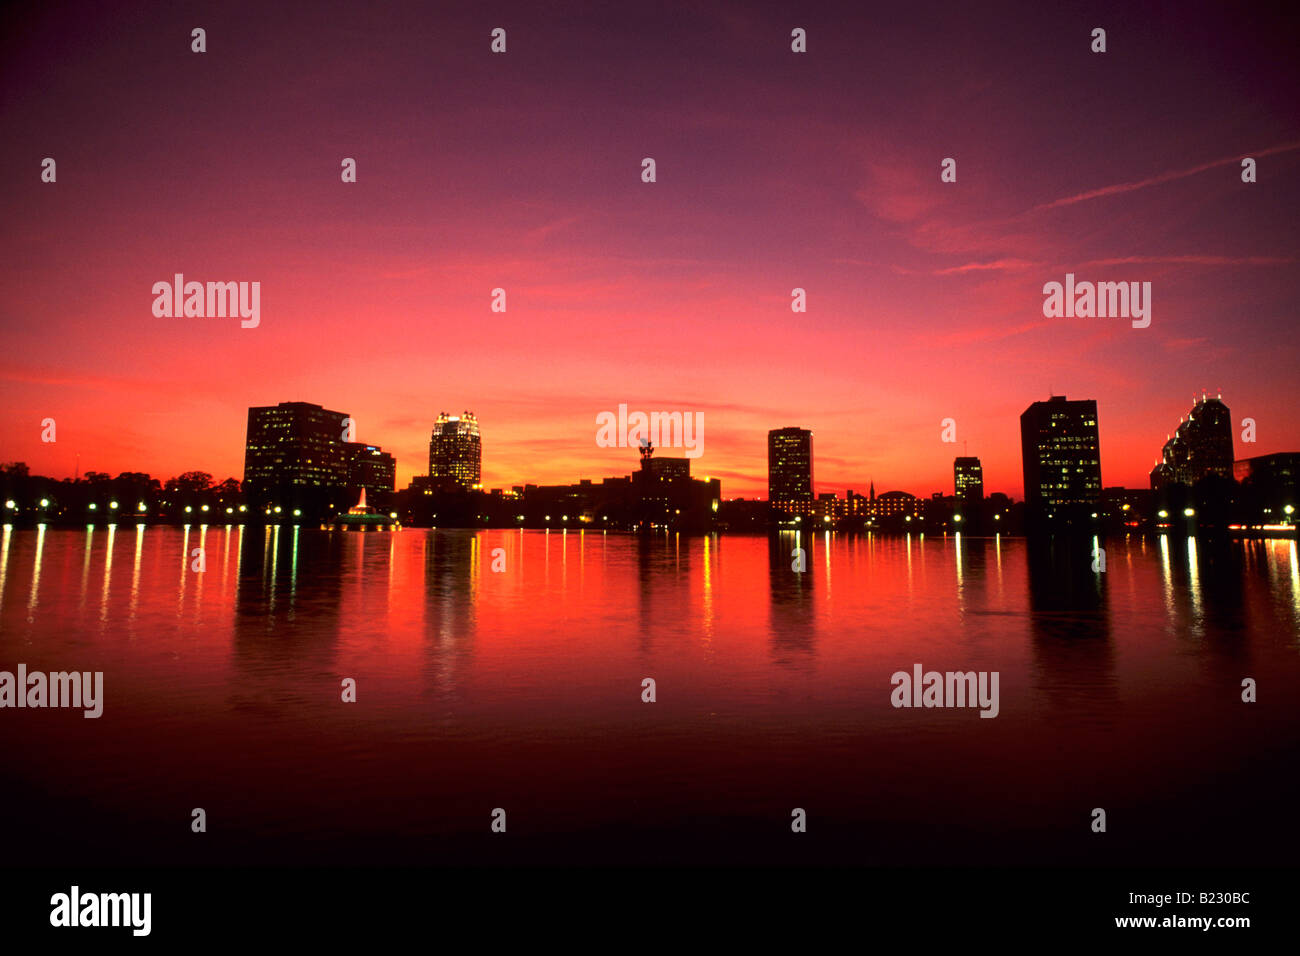 Reflection of buildings in water at dusk, Lake Eola, Orlando, Orange County, Florida, USA - Stock Image